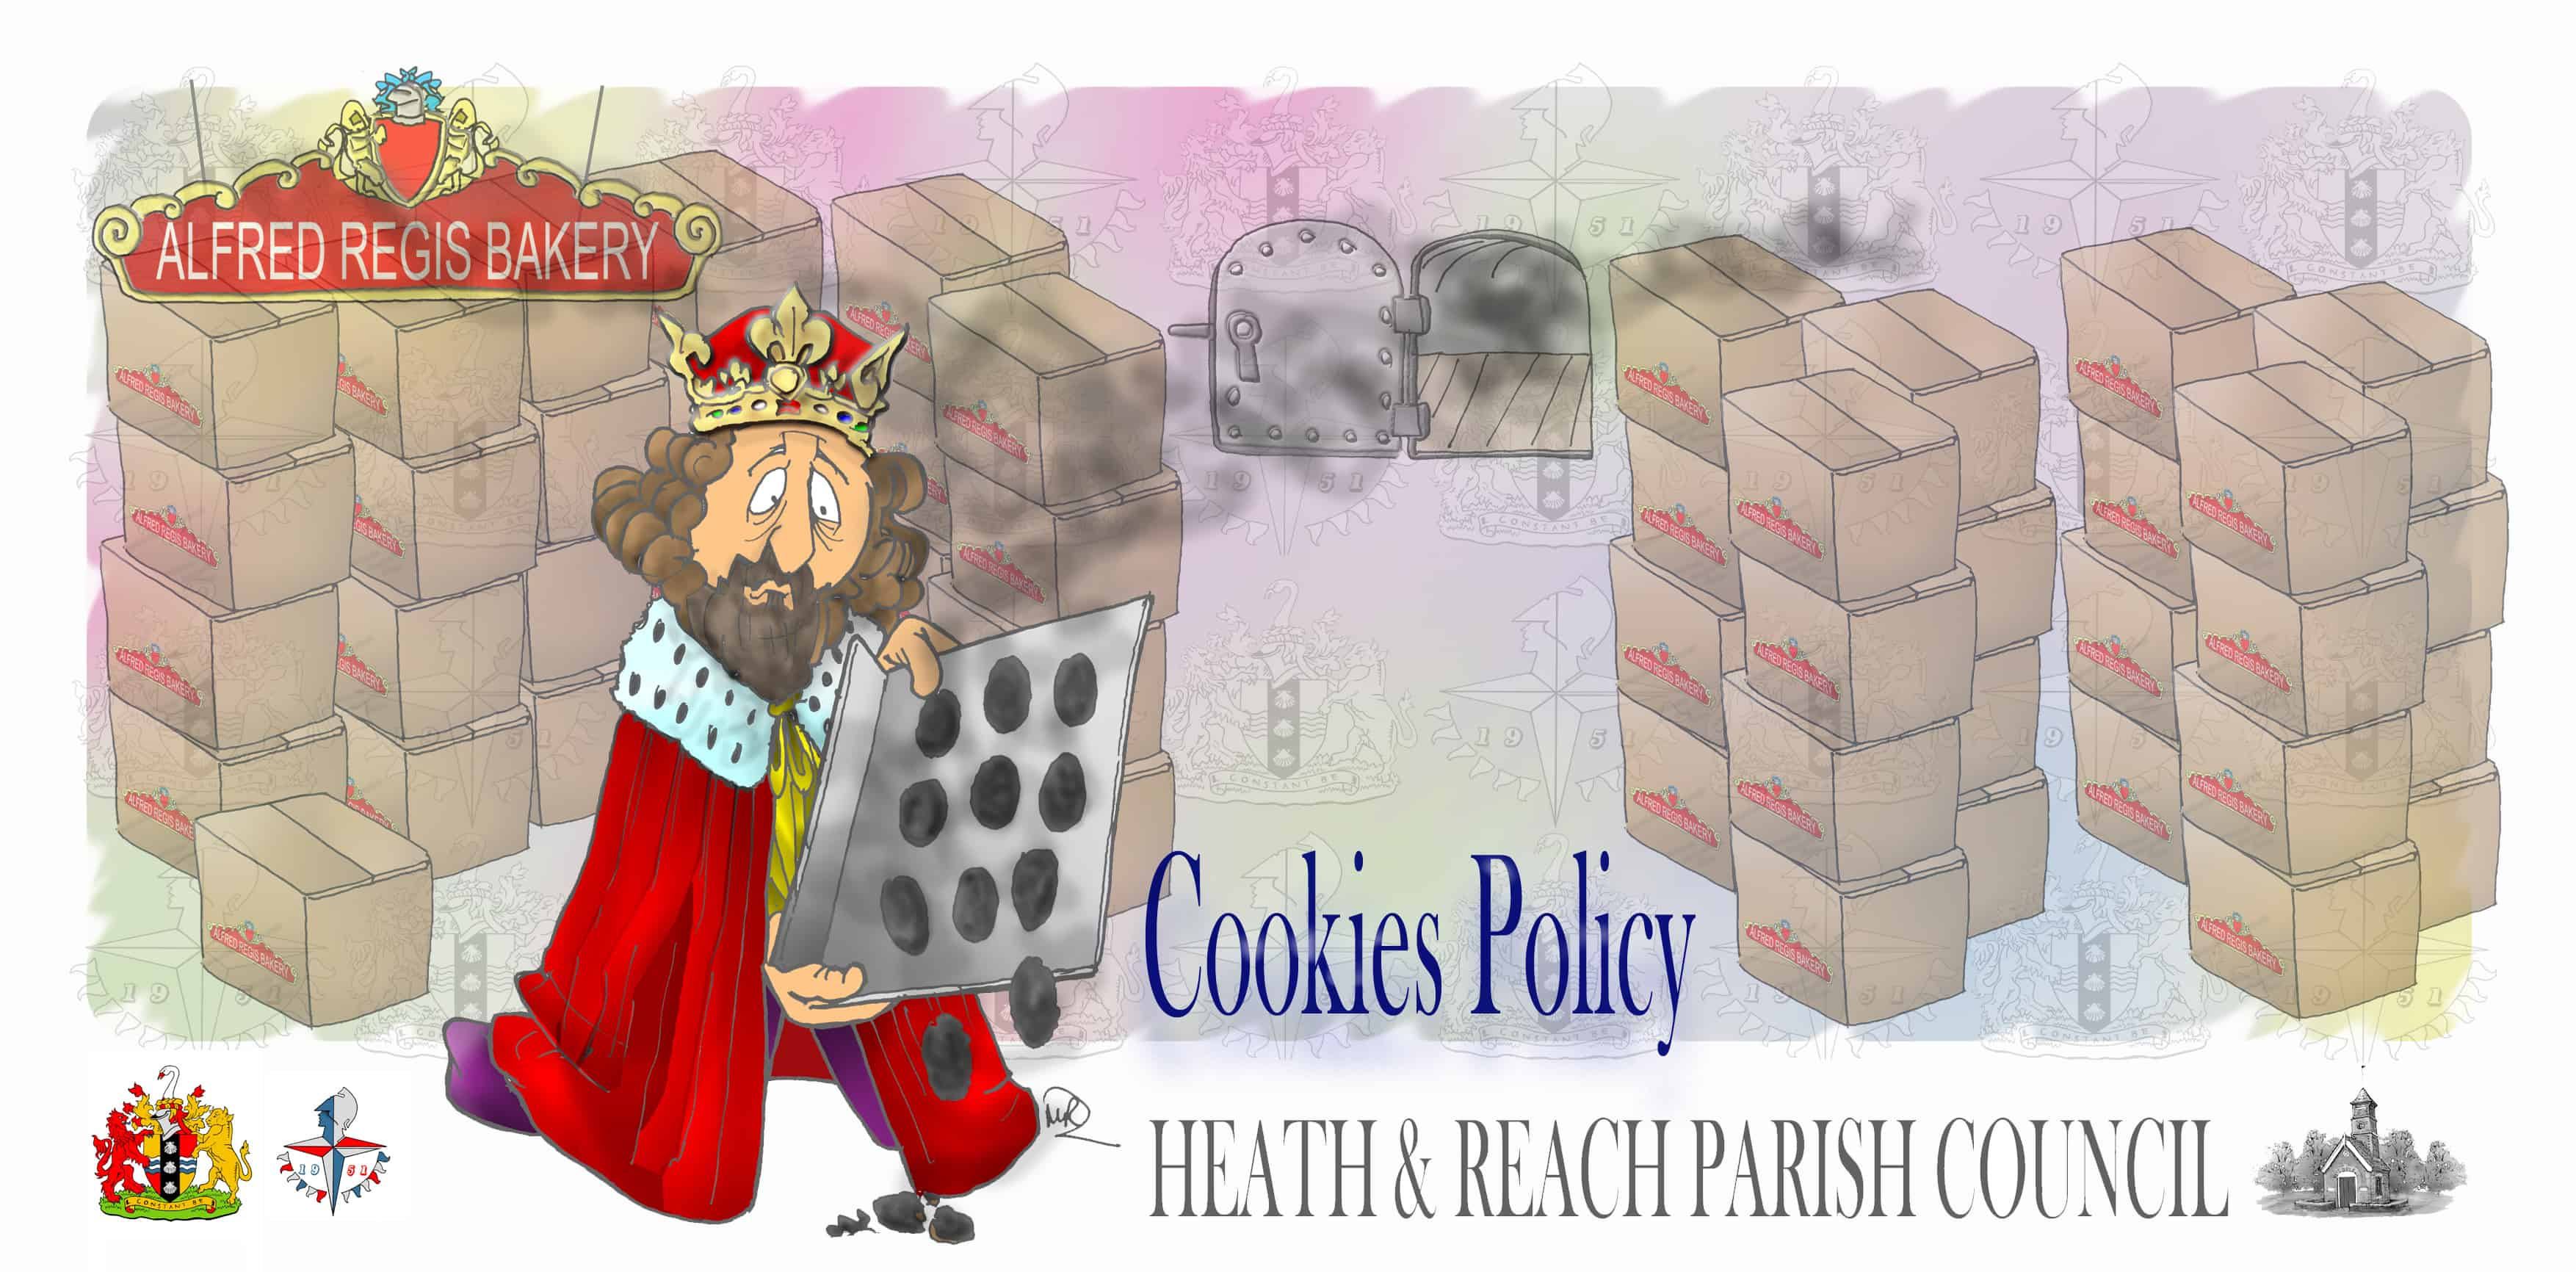 HRPC Cookies Policy drawn by Martin Richardson of Graphite HB